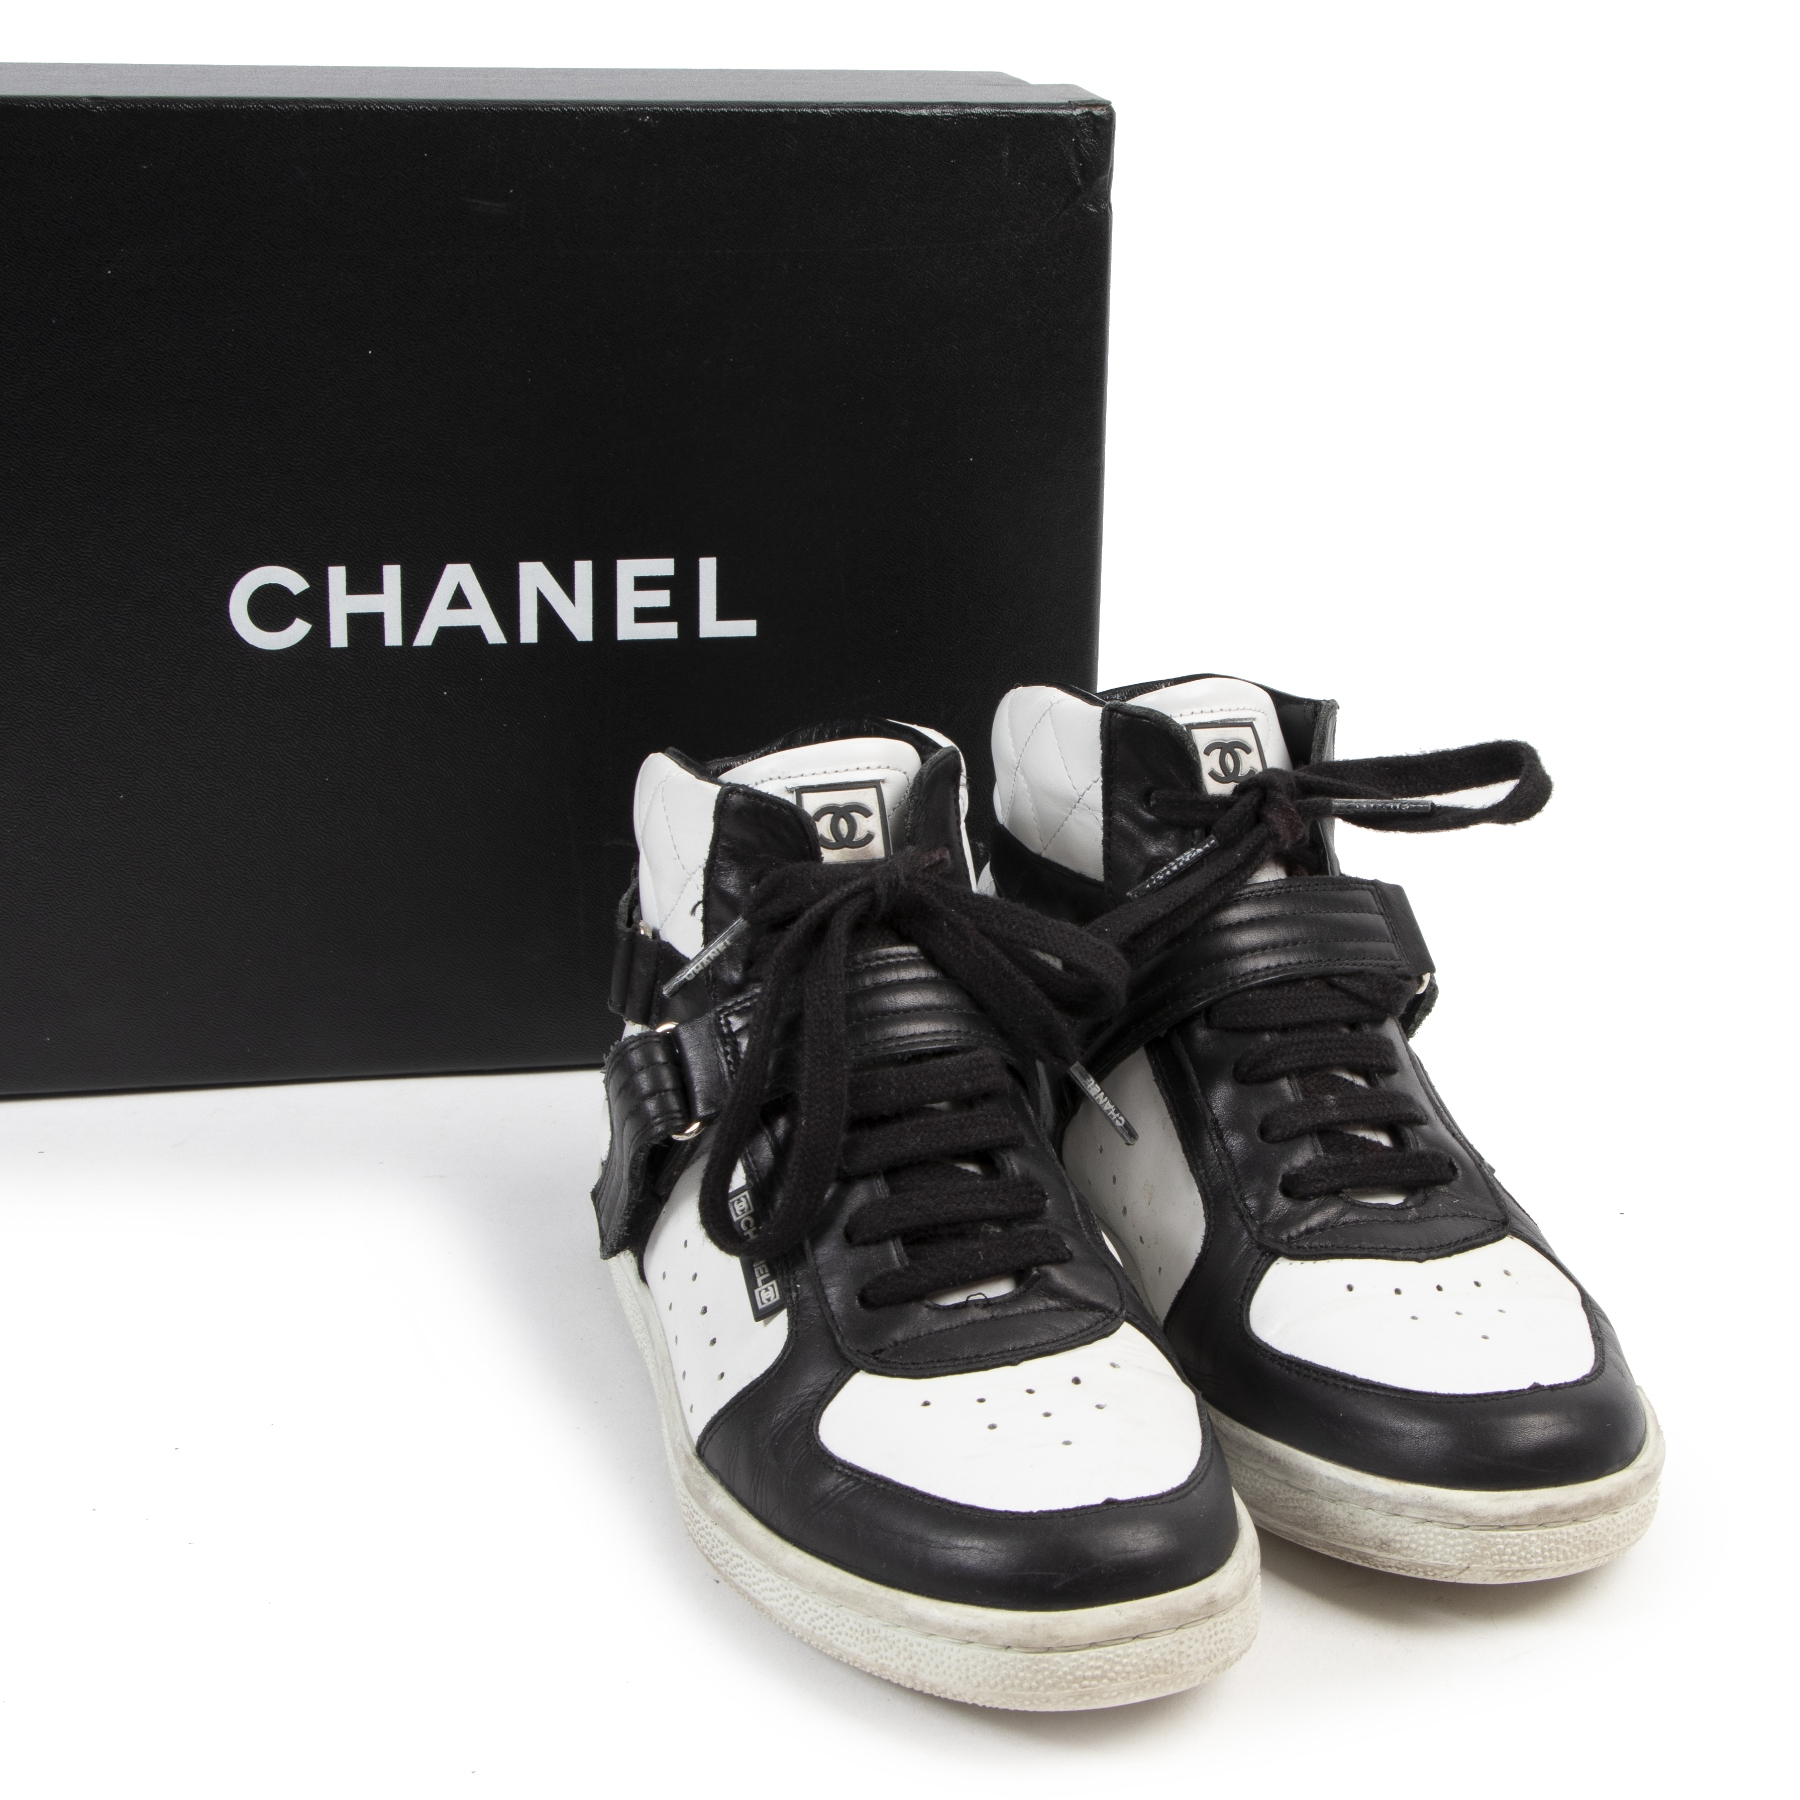 Buy authentic second hand Chanel shoes with right price at LabelLOV.